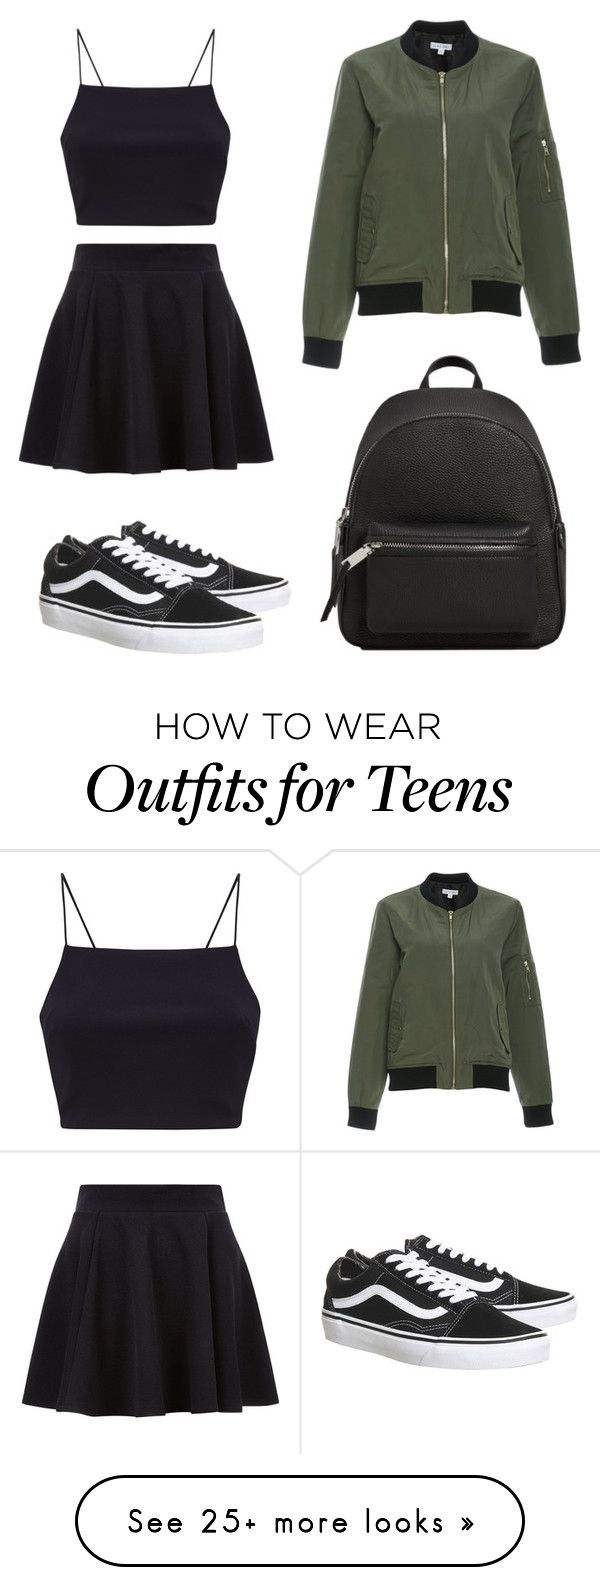 """Untitled #1"" by jessicanewman2408 on Polyvore featuring Vans and MANGO"